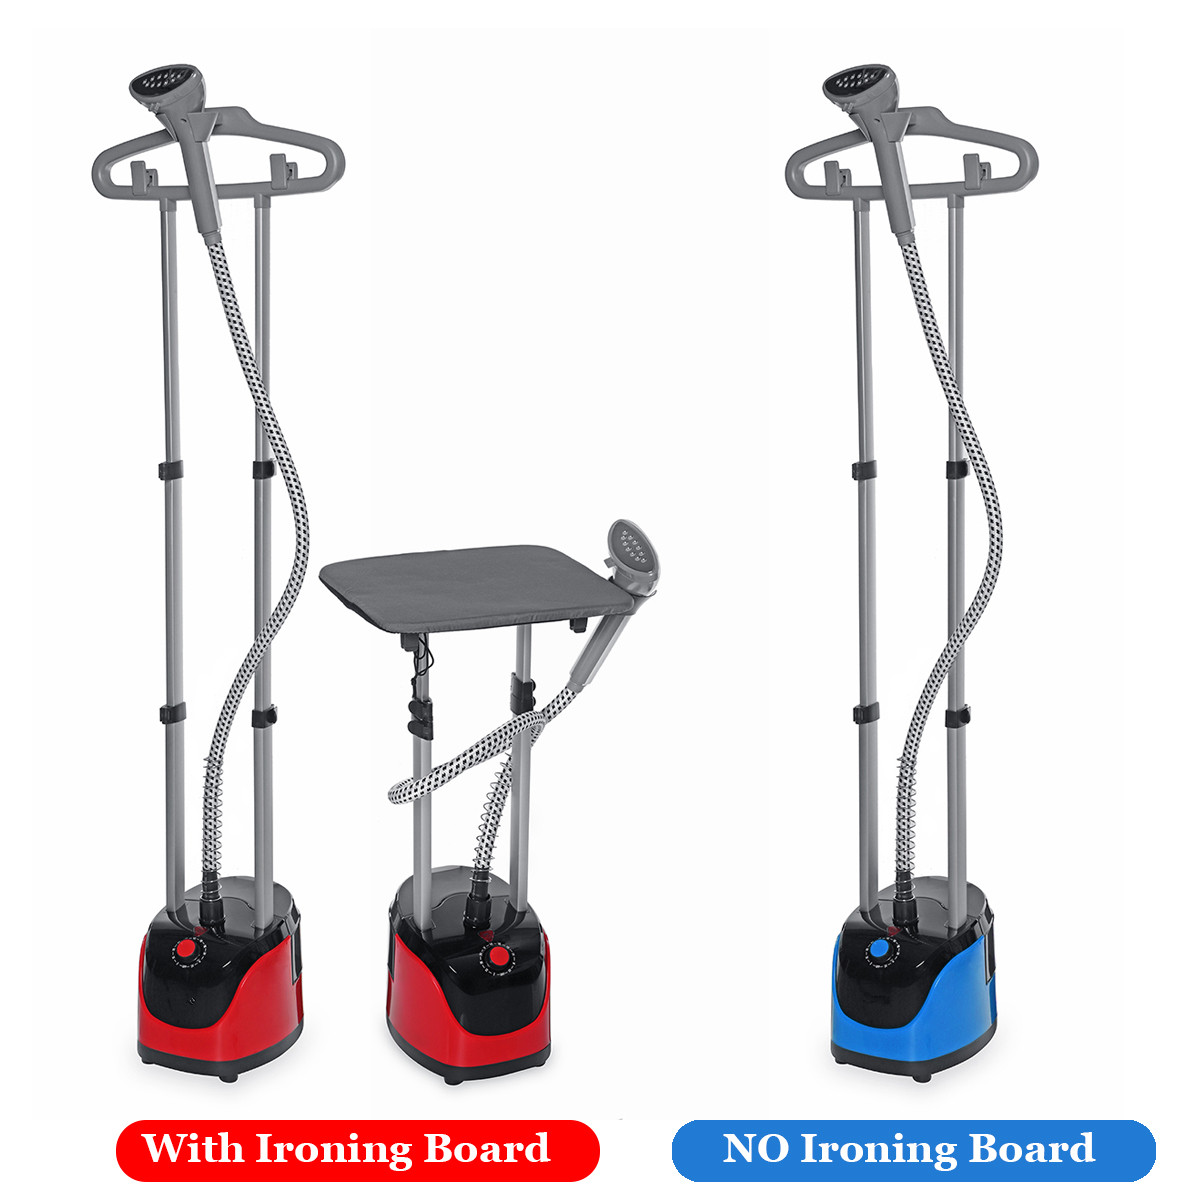 Double Pole Garment Steamers 220V 1800W Household Clothes Steamer Iron Machine 11 Gears Steam 11-hole Steam Injection